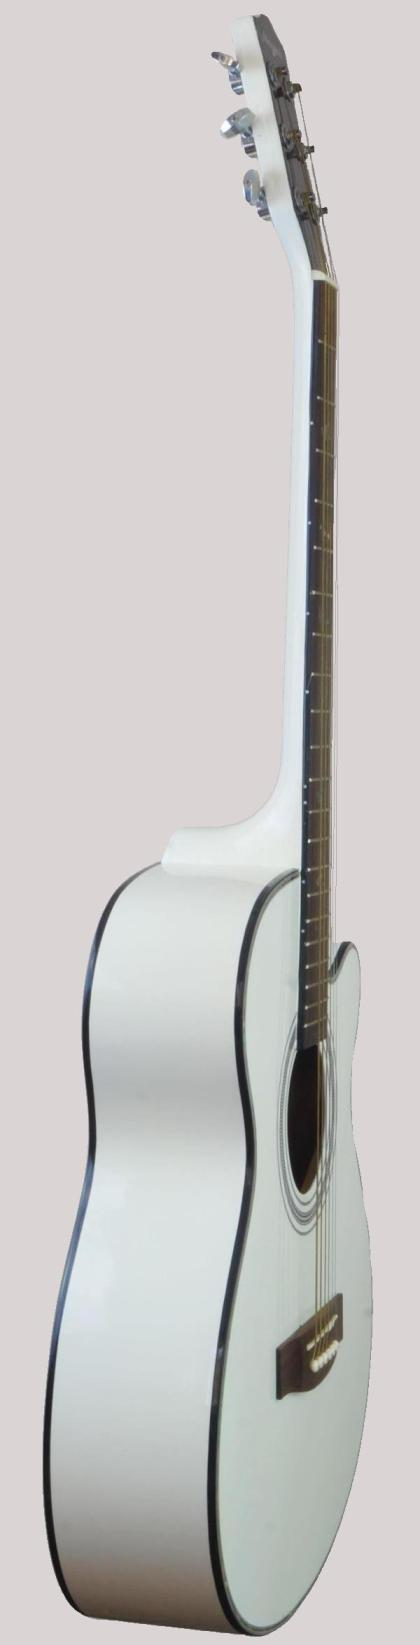 white chinese guitar with bird fret markers